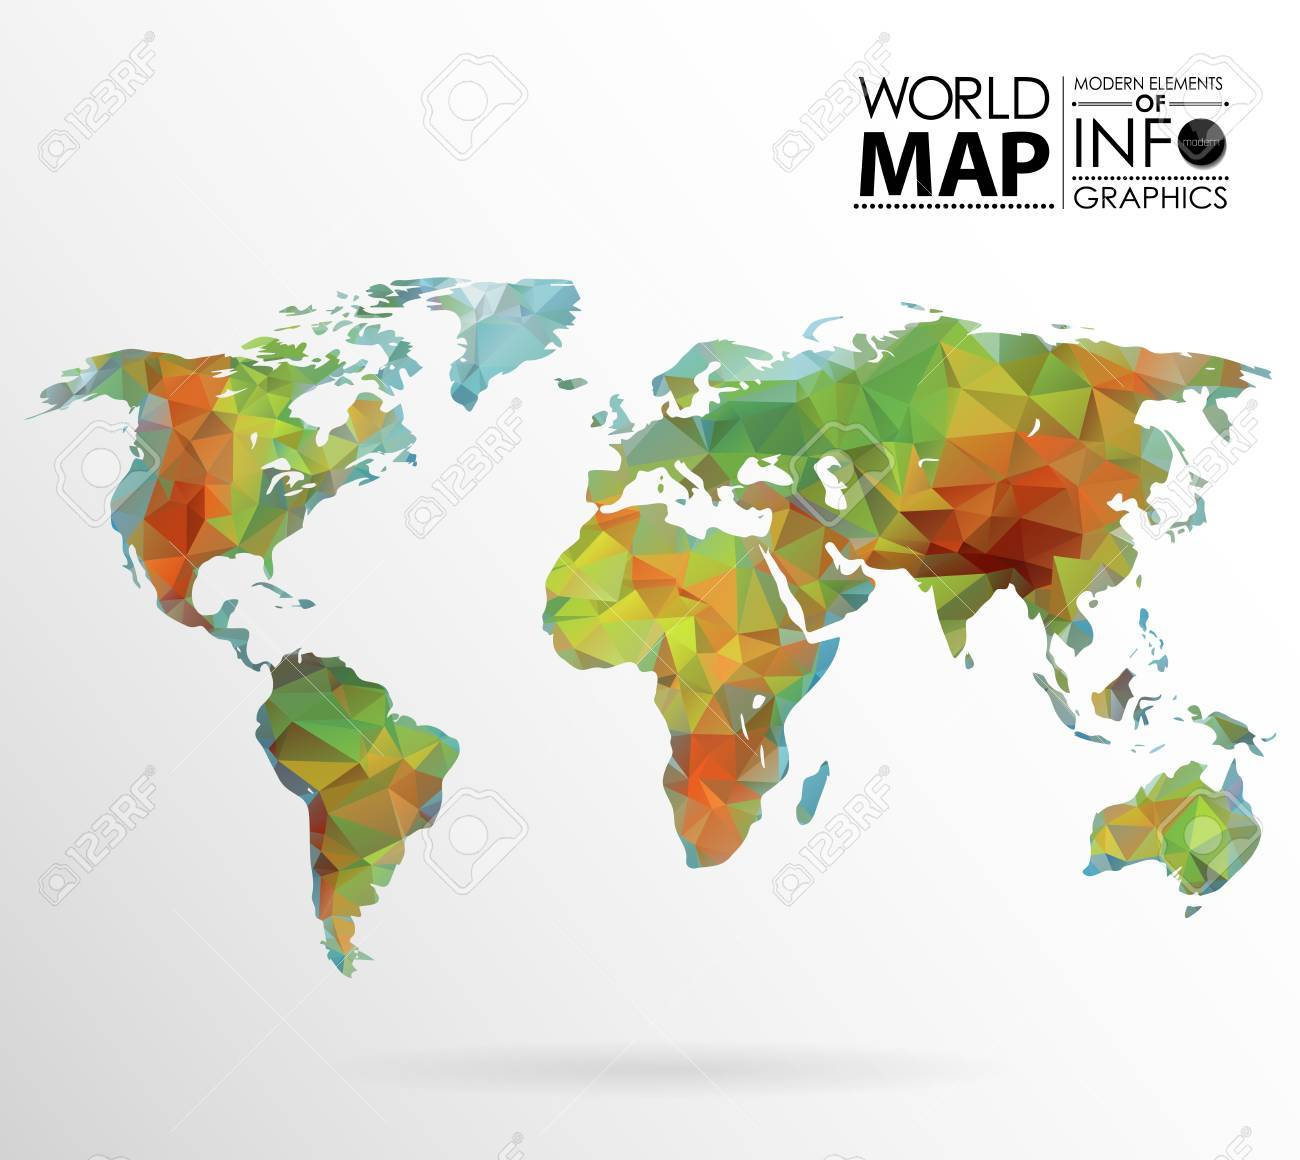 Physical world map background in polygonal style modern elements of physical world map background in polygonal style modern elements of info graphics world map gumiabroncs Choice Image